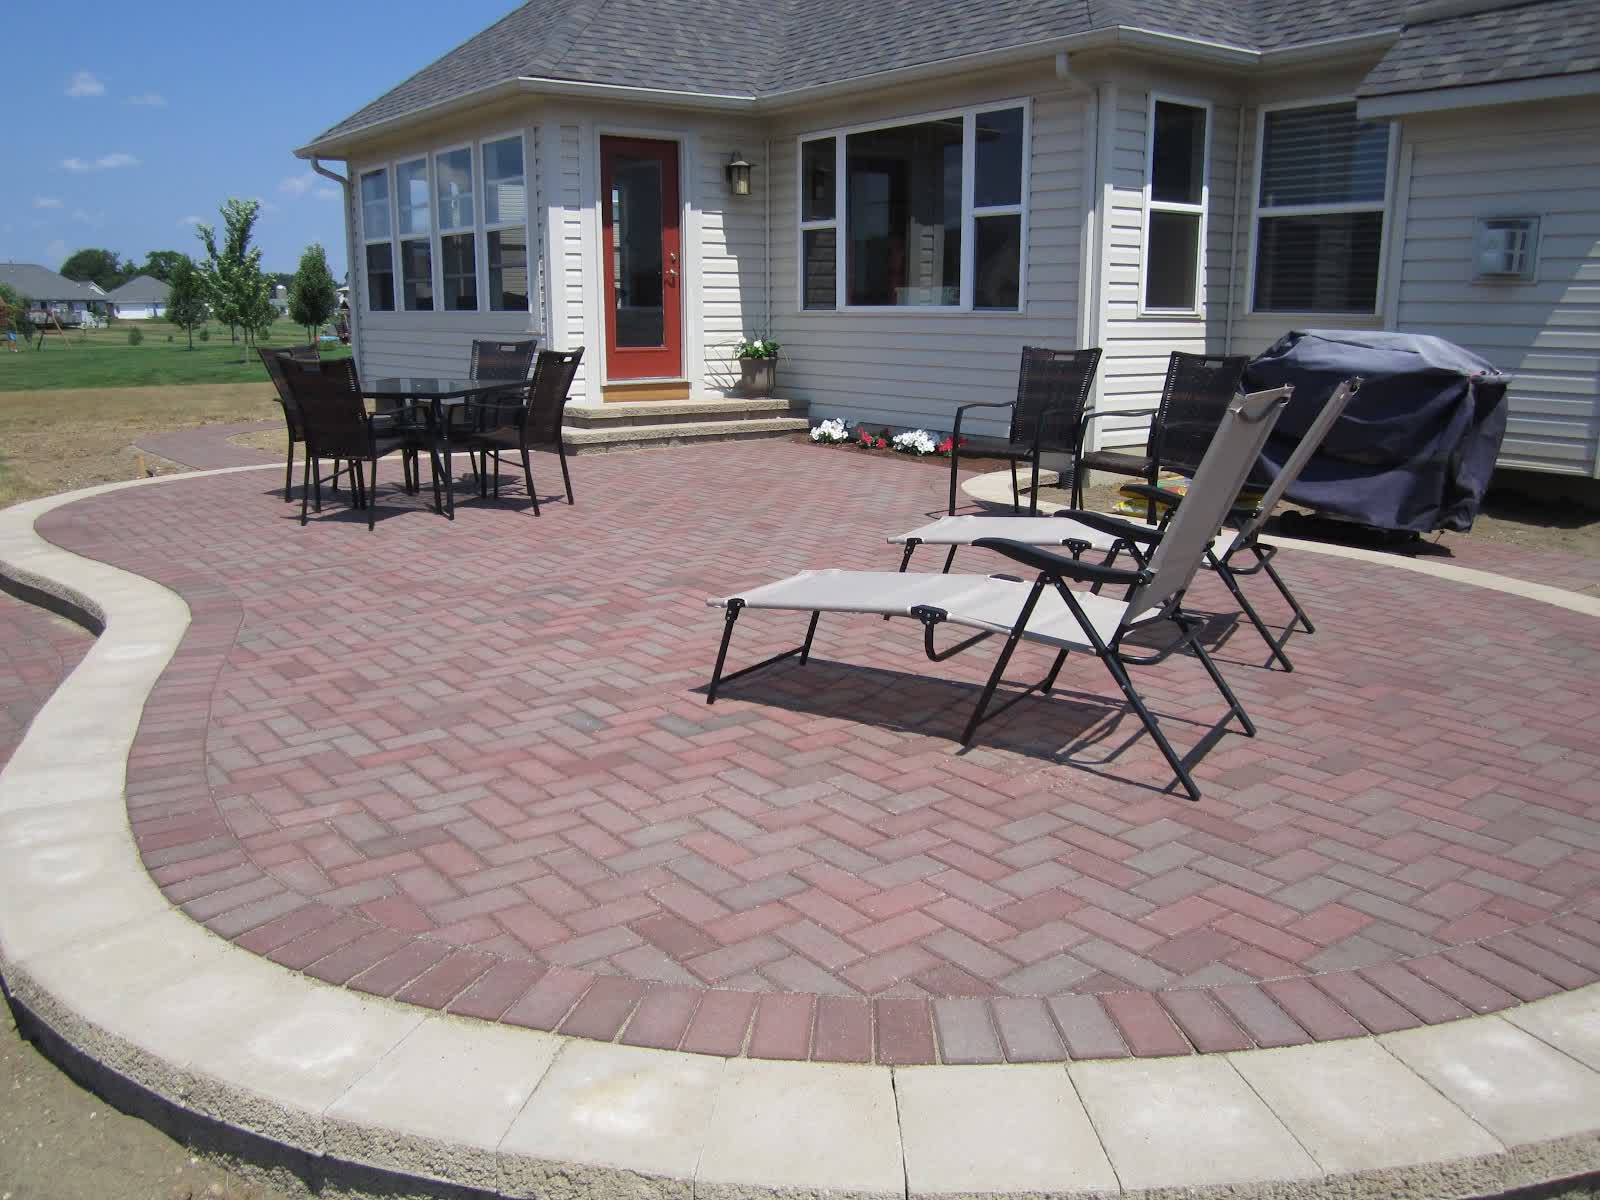 Build Contended and Stunning Patio and Pathways with Best ... on Patio Shape Designs id=29147